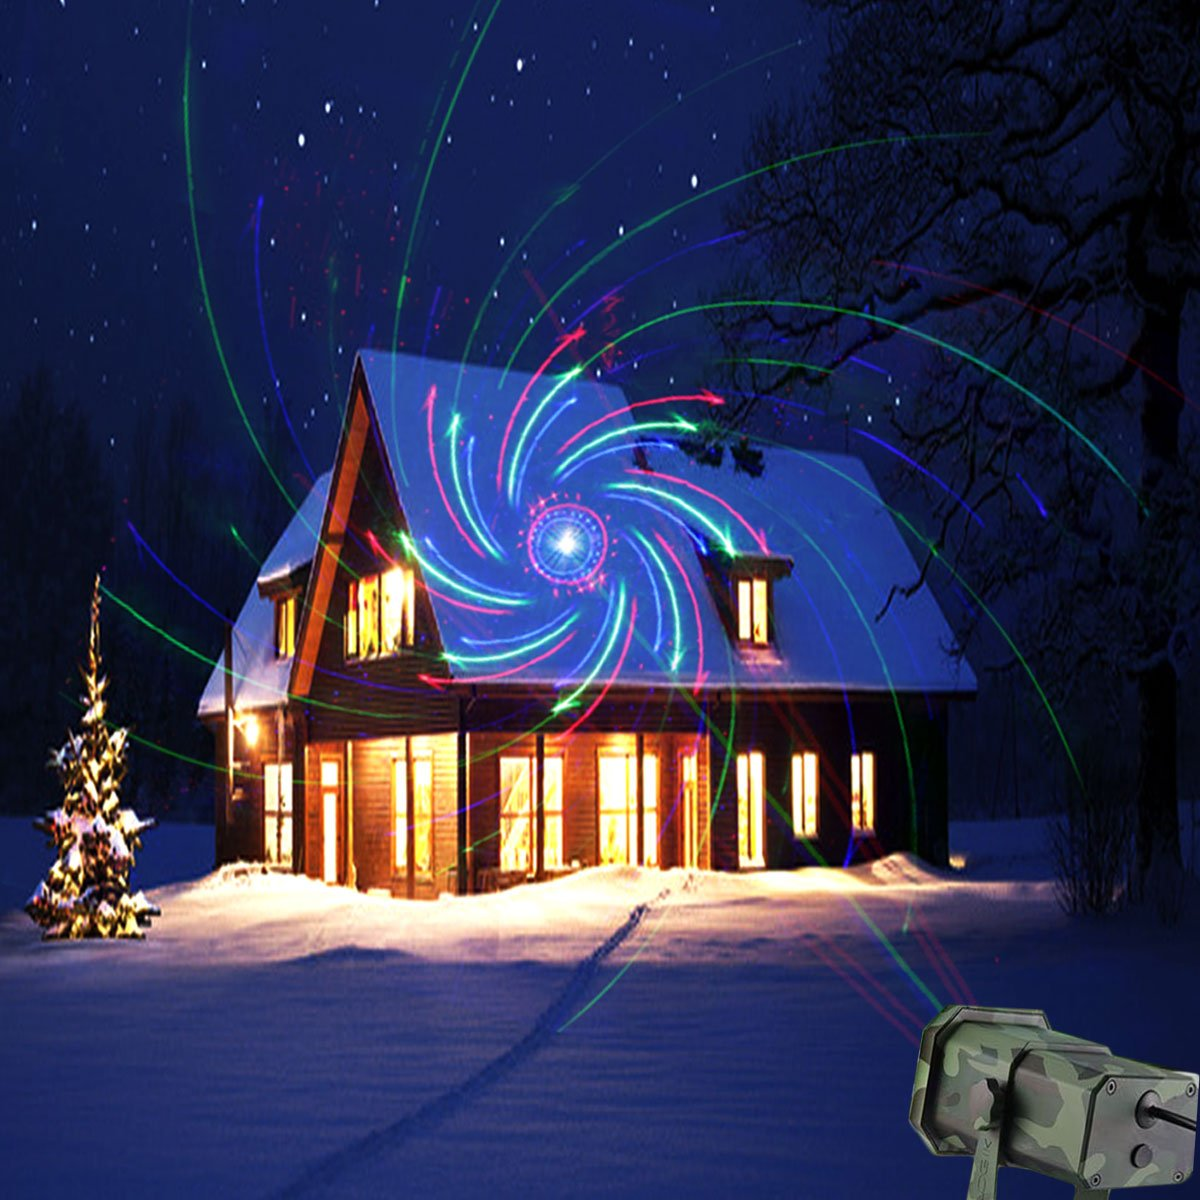 EVA Logik Outdoor Waterproof Laser Projector Light, Moving RGB 20 Patterns, with RF Remote Control & Timer, Perfect for Lawn, Party, Garden Decoration by Eva logik (Image #3)